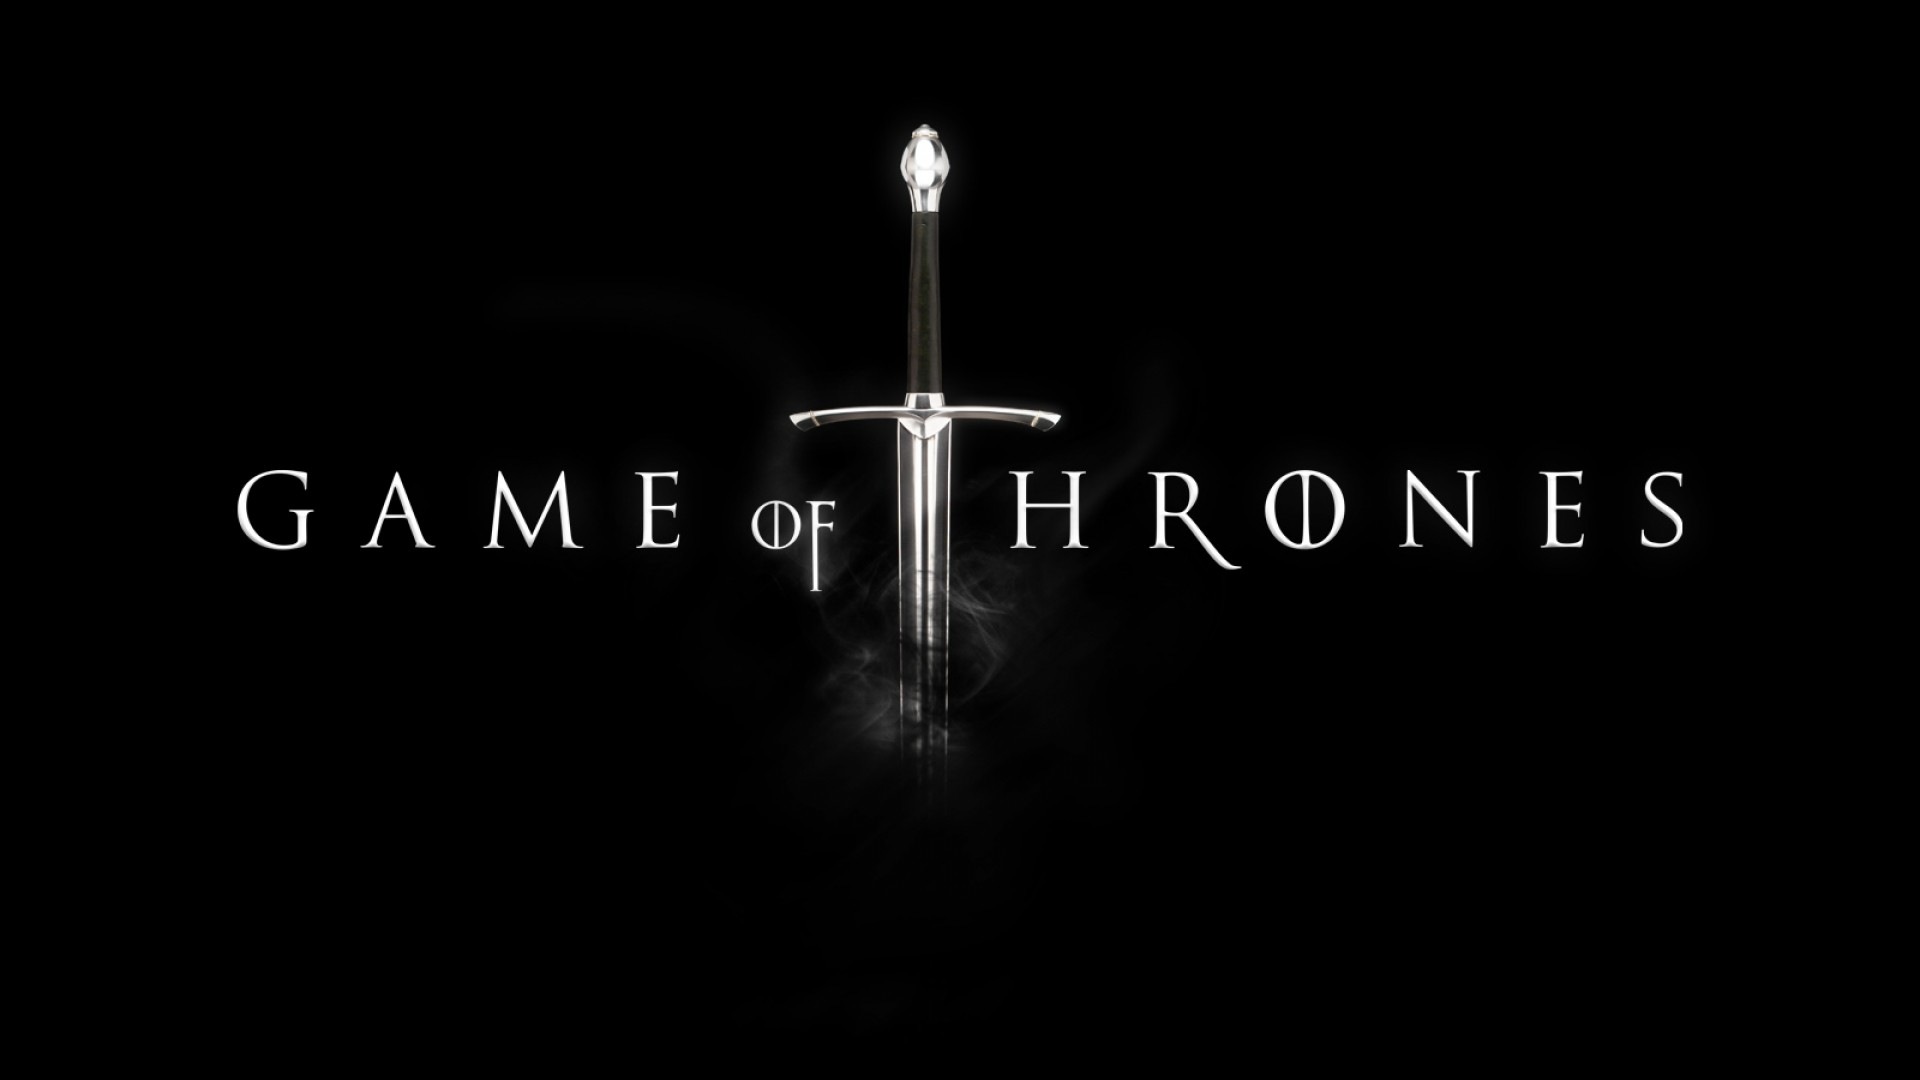 game of thrones 1080p wallpaper, background pics for computer